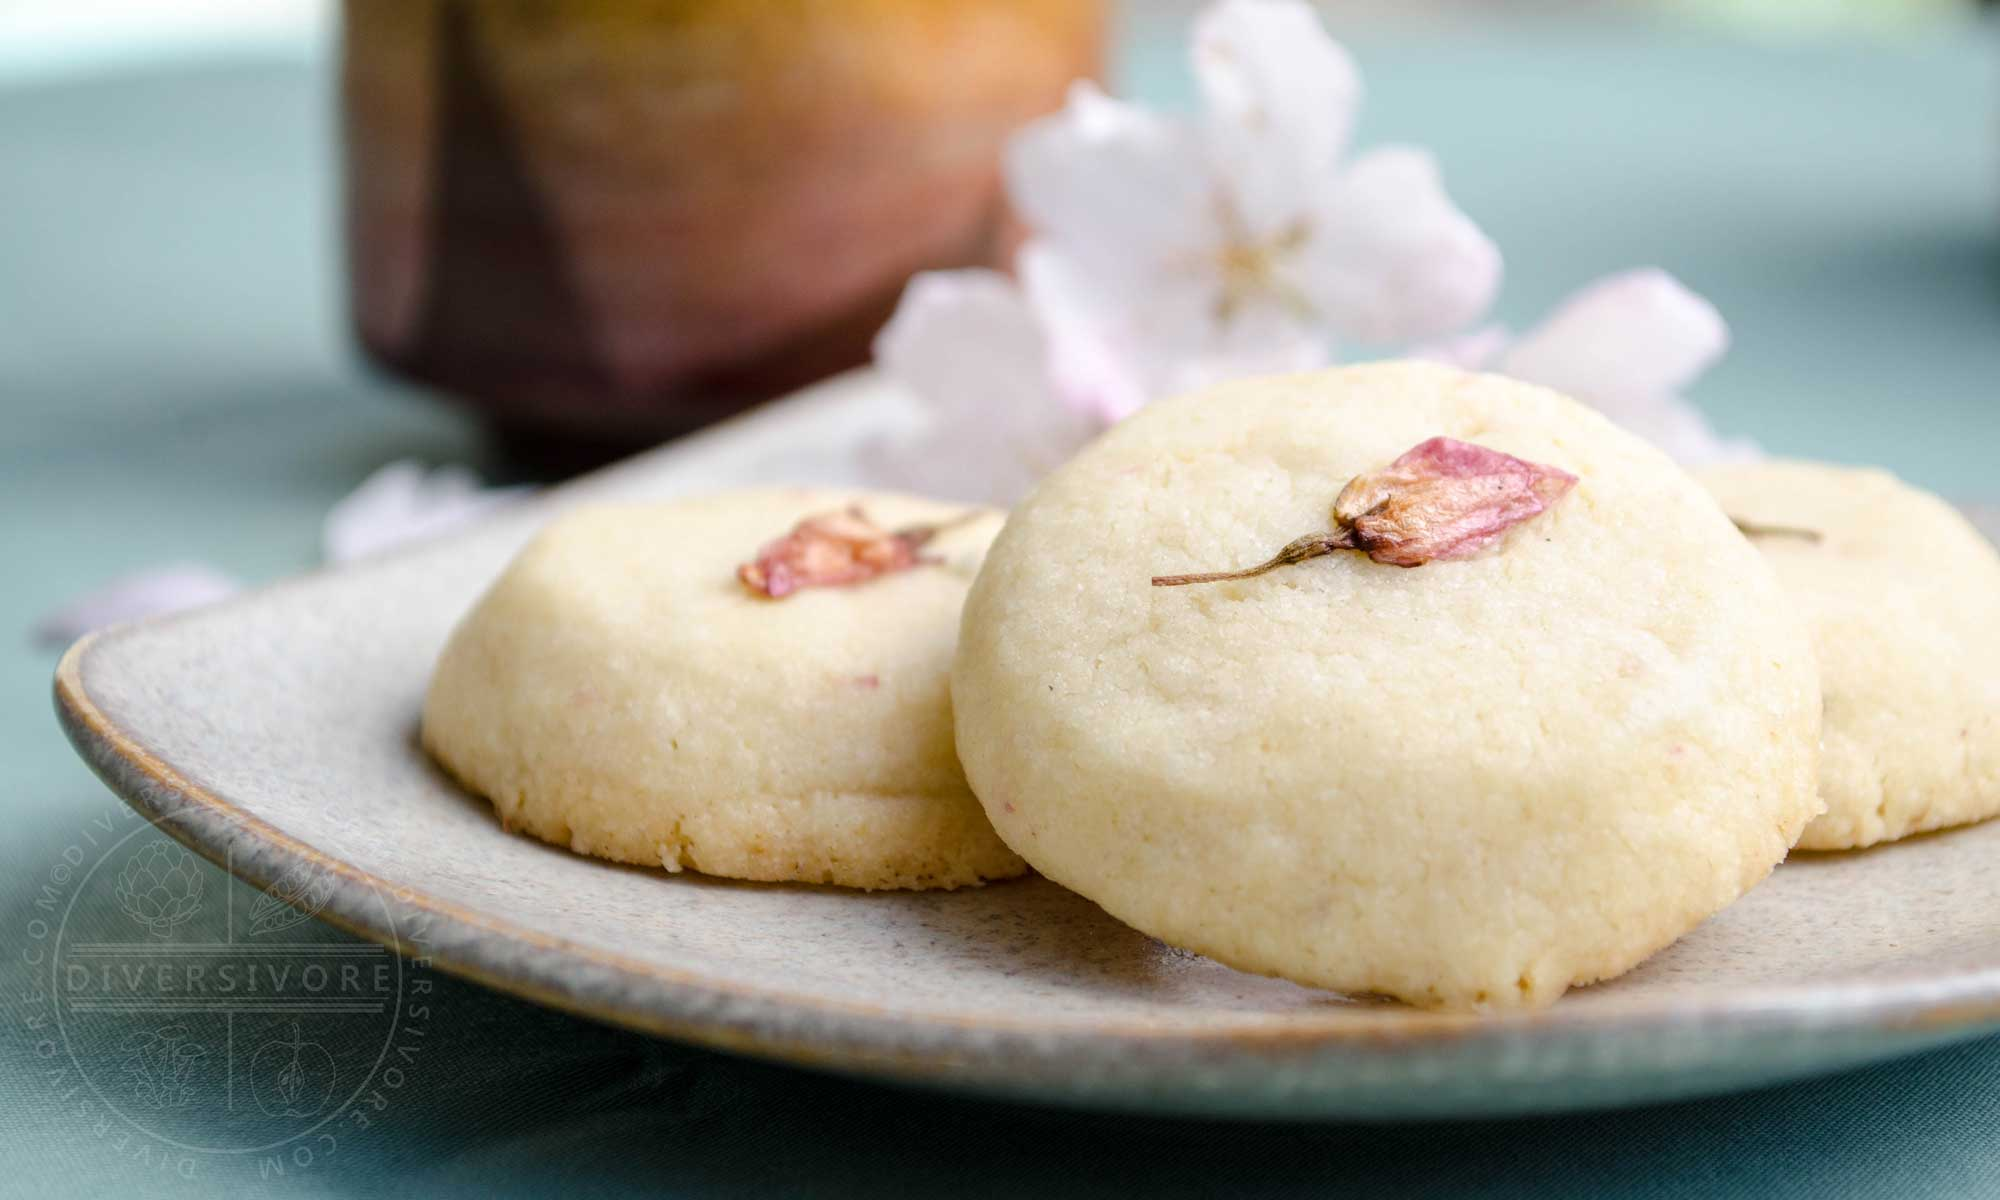 Sakura Sabure - Cherry blossom shortbread cookies on a sand-coloured plate with a tea cup